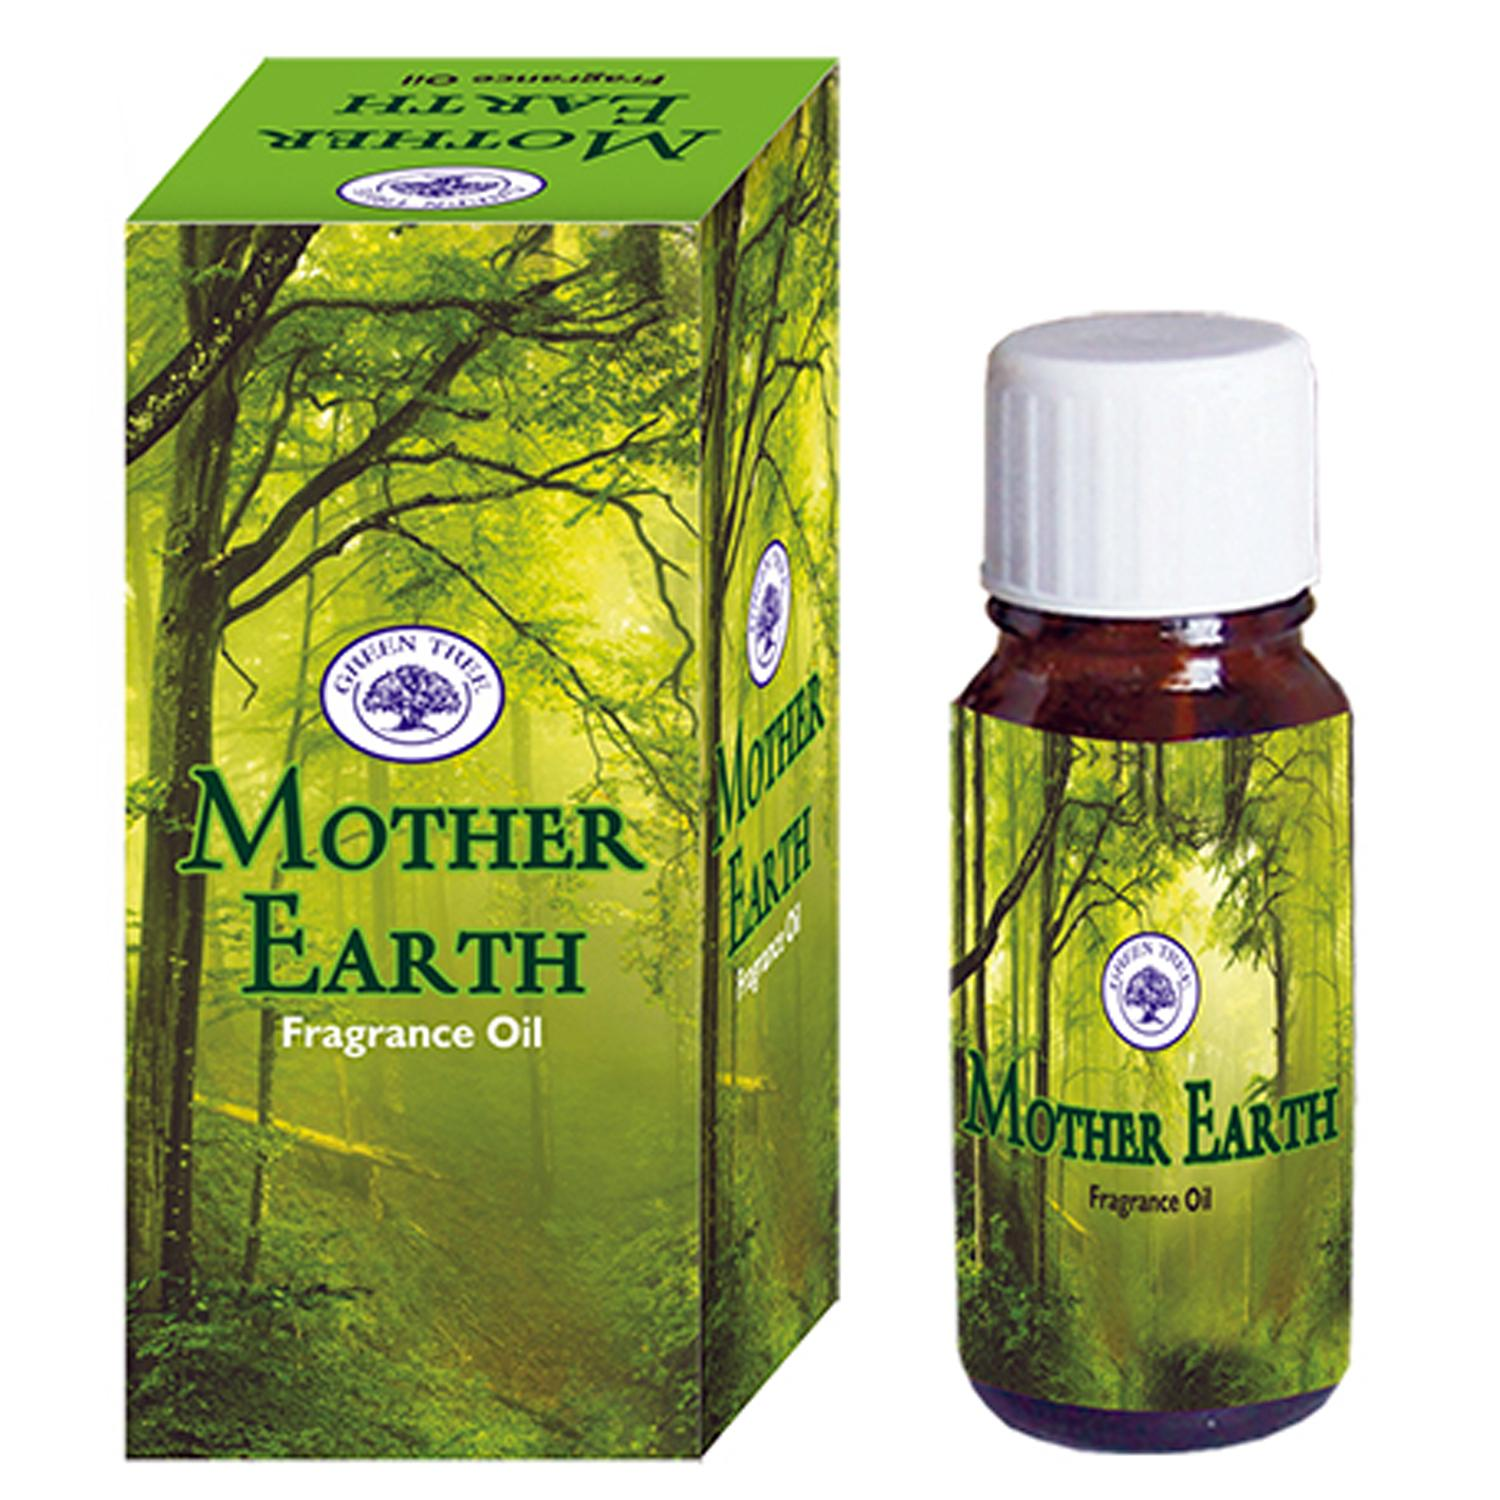 Green Tree Fragrance Oil - MOTHER EARTH